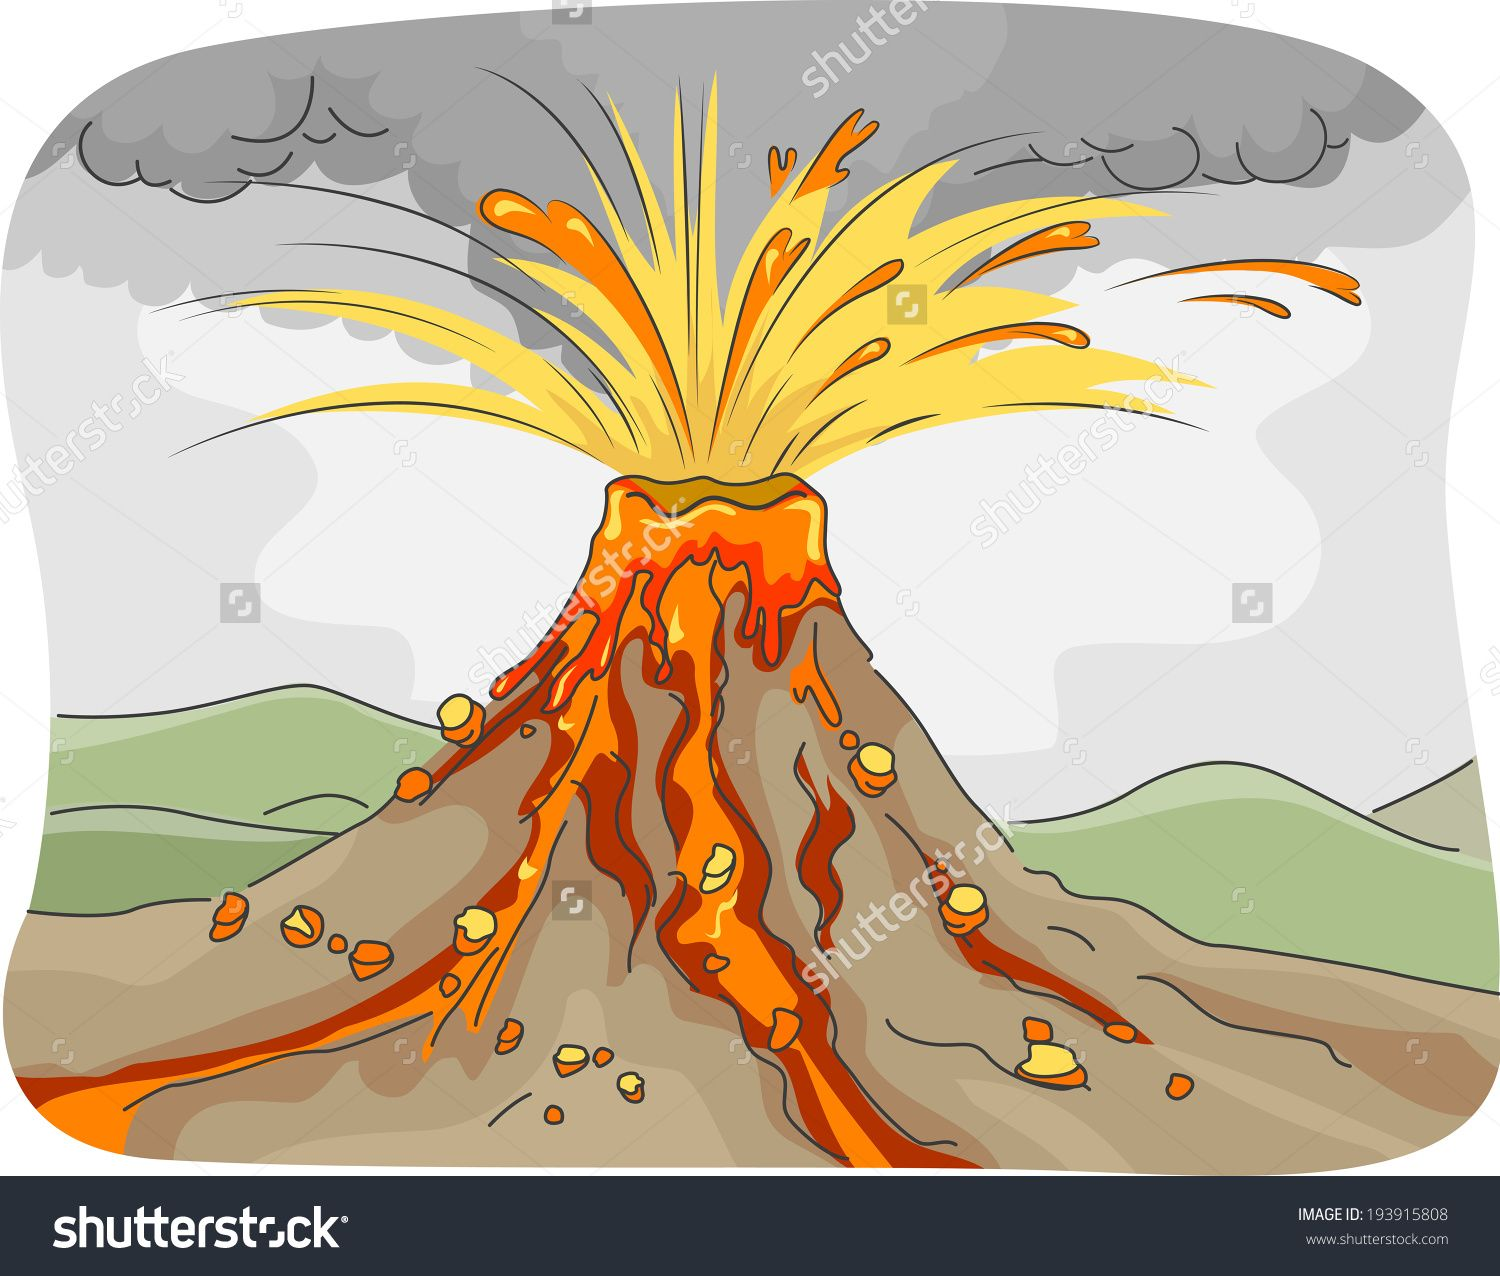 Illustration Featuring an Erupting Volcano Spewing Lava.